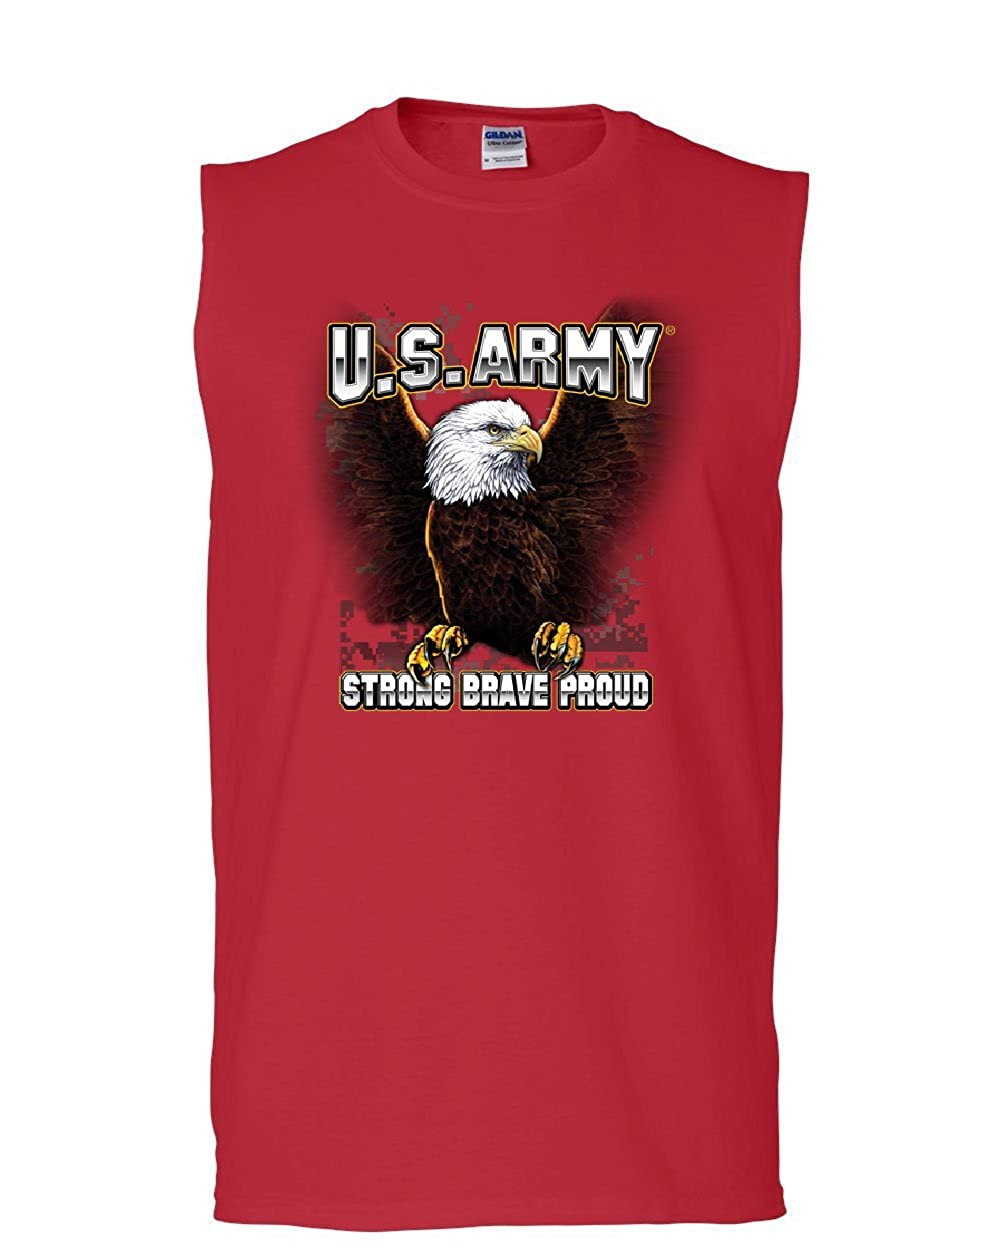 United States Army Muscle Shirt Bald Eagle Strong Brave Proud Veteran Sleeveless